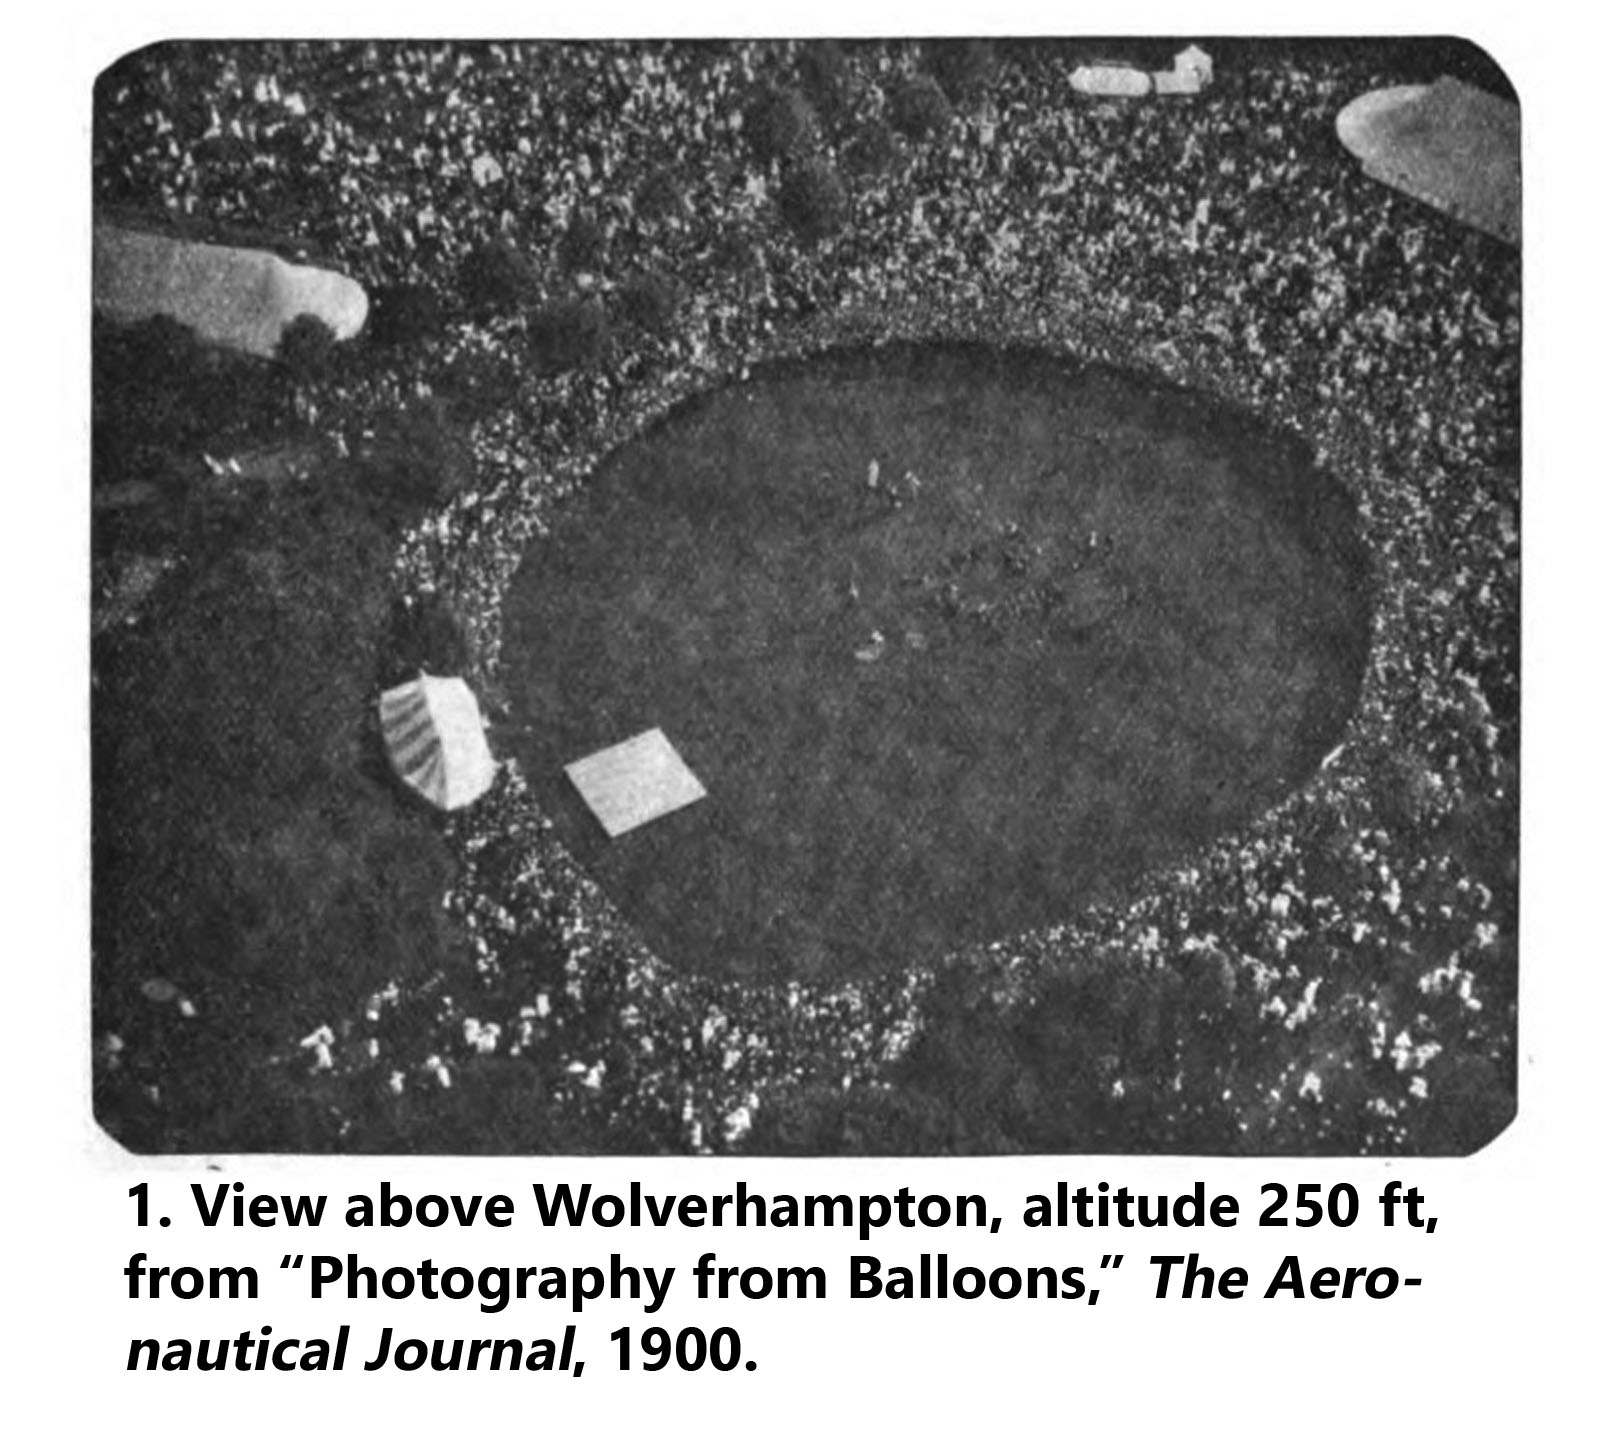 Aerial photograph above Wolverhampton, depicts crowd watching photographer ascend in a hydrogen balloon, 1900